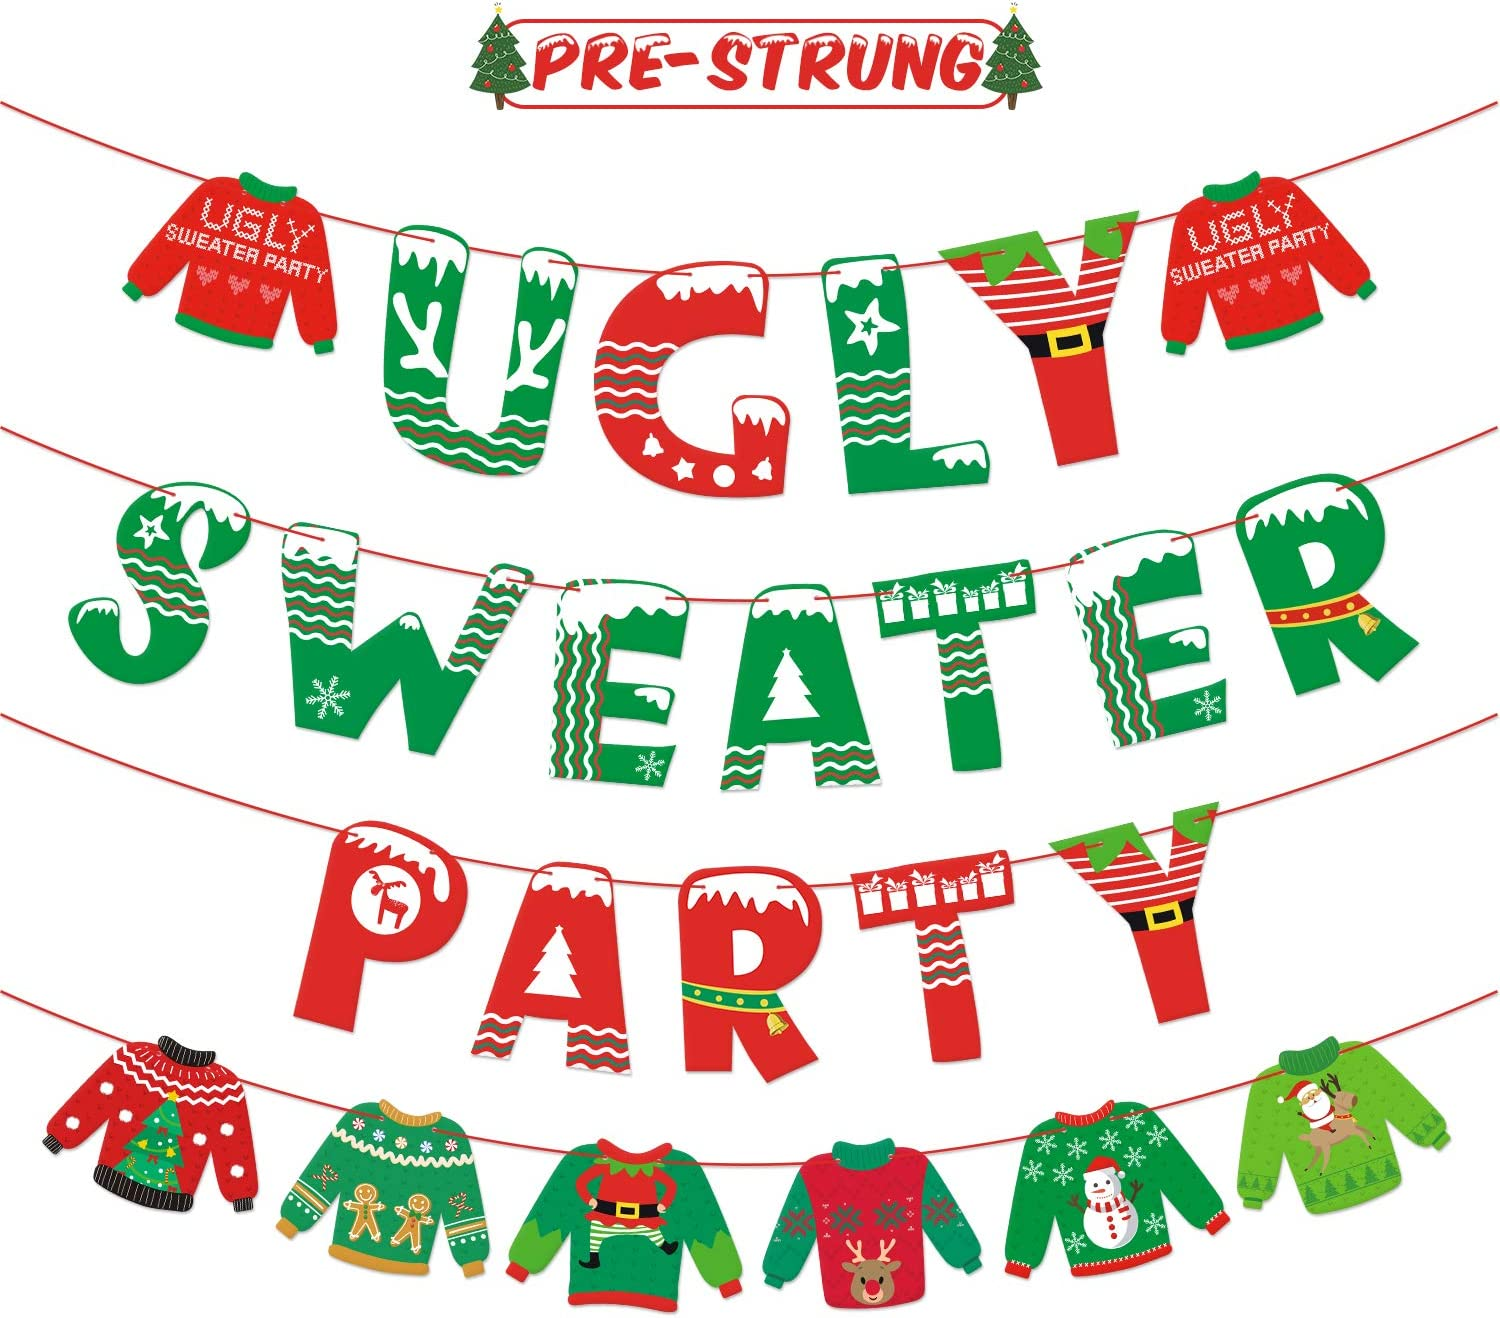 Bessmoso Ugly Sweater Party Banner Tacky Christmas Sweater Photo Props Garland for Wintertime Holiday Christmas Party Decorations Office Xmas Party Supplies